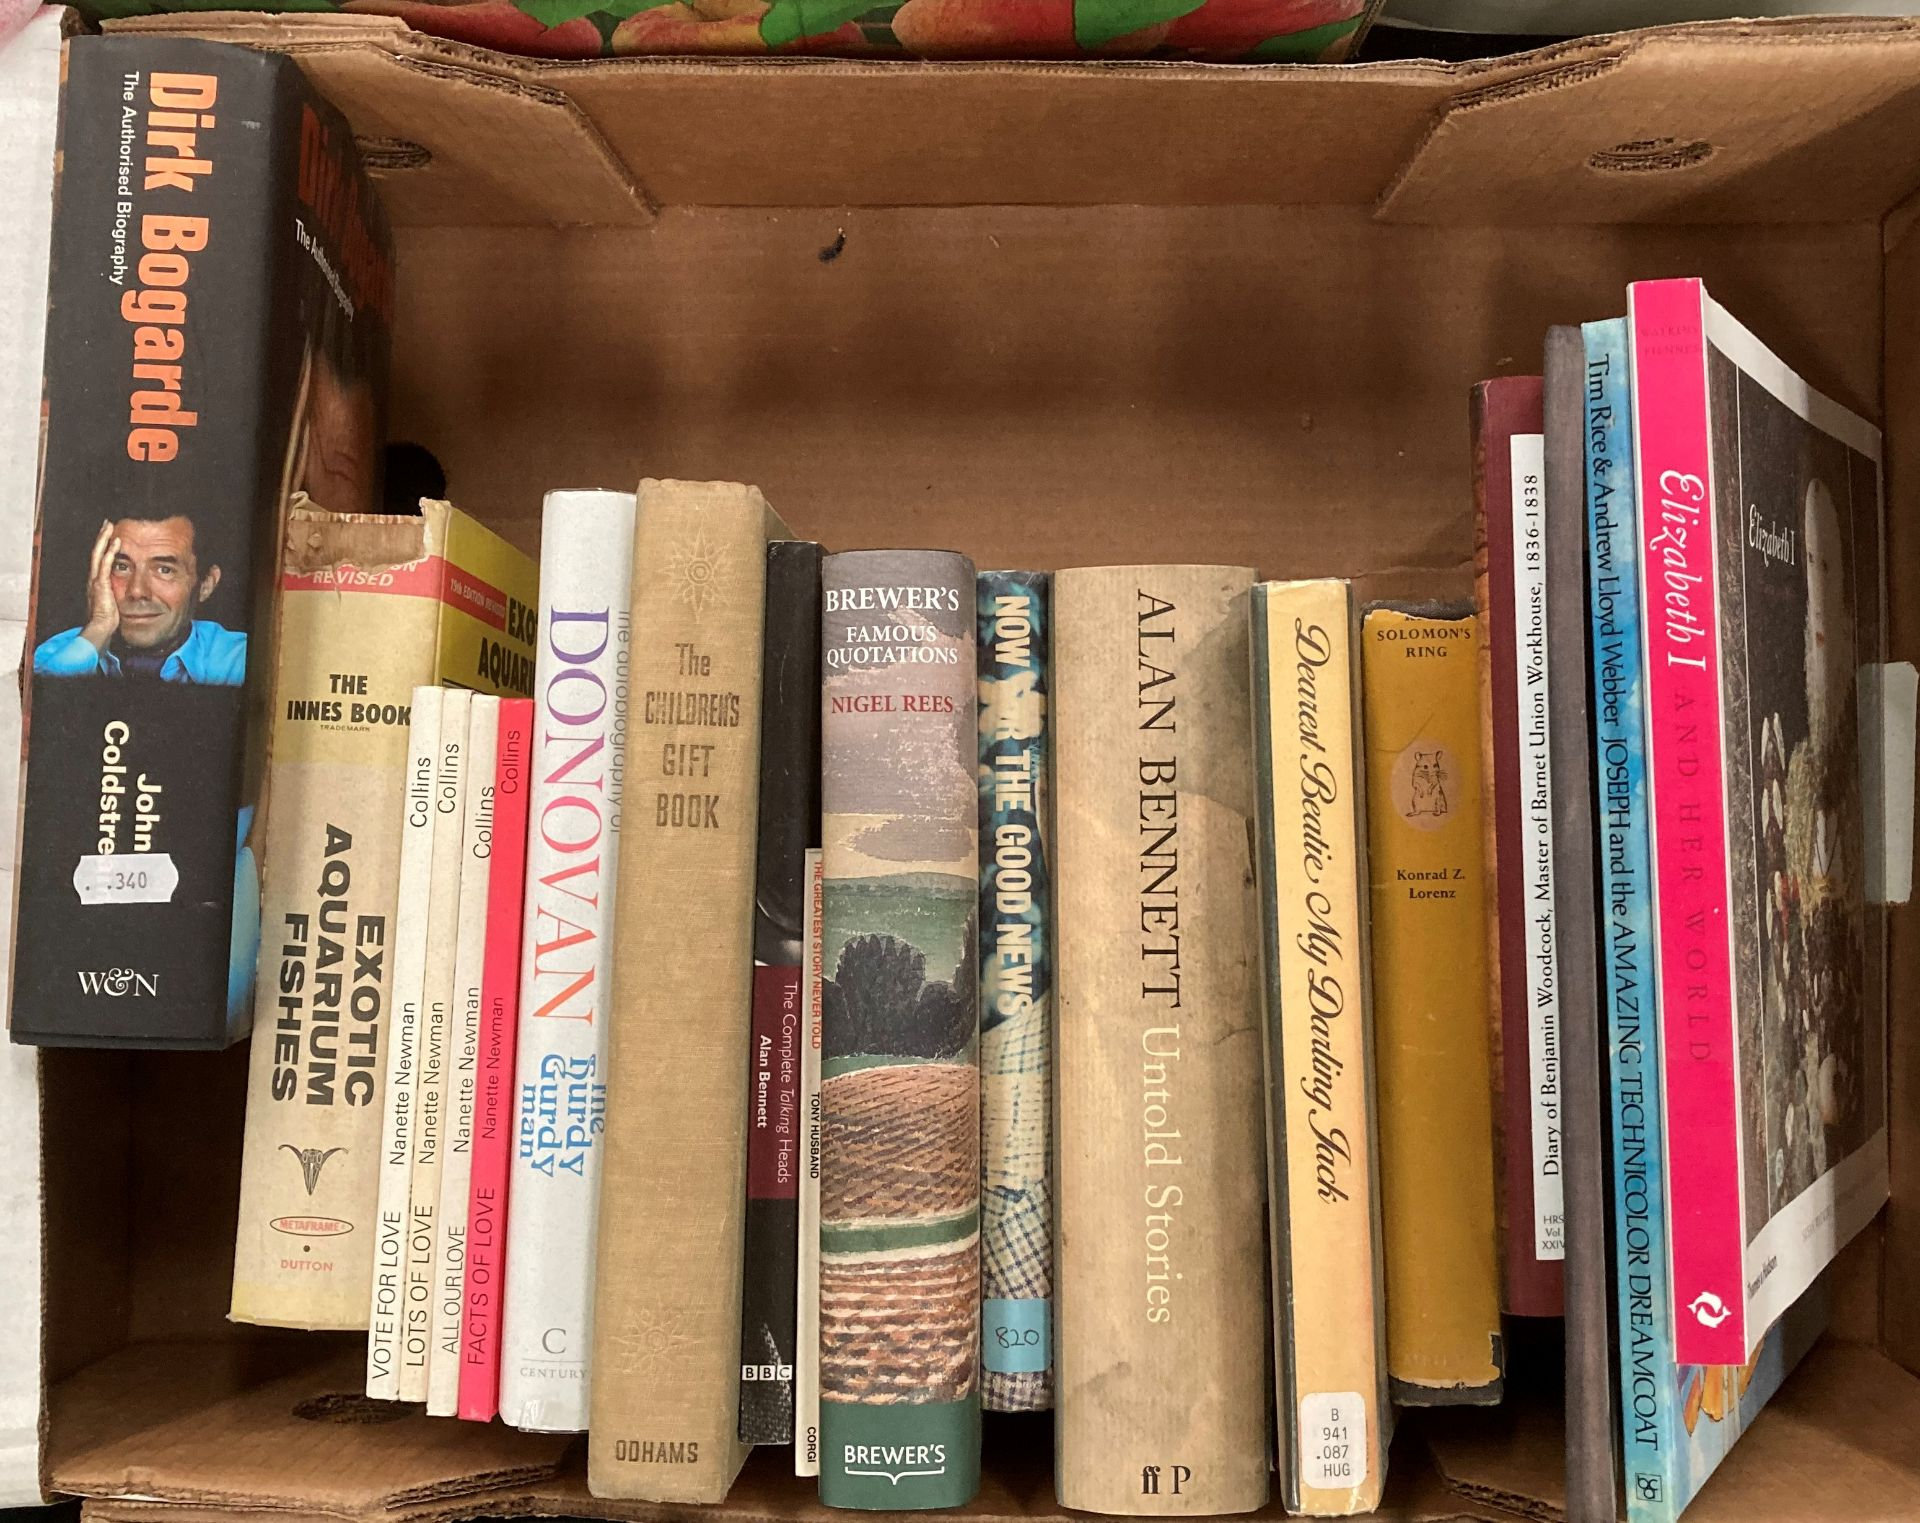 Contents to four boxes books on English Literature, poetry, biographies, religion etc. - Image 5 of 5